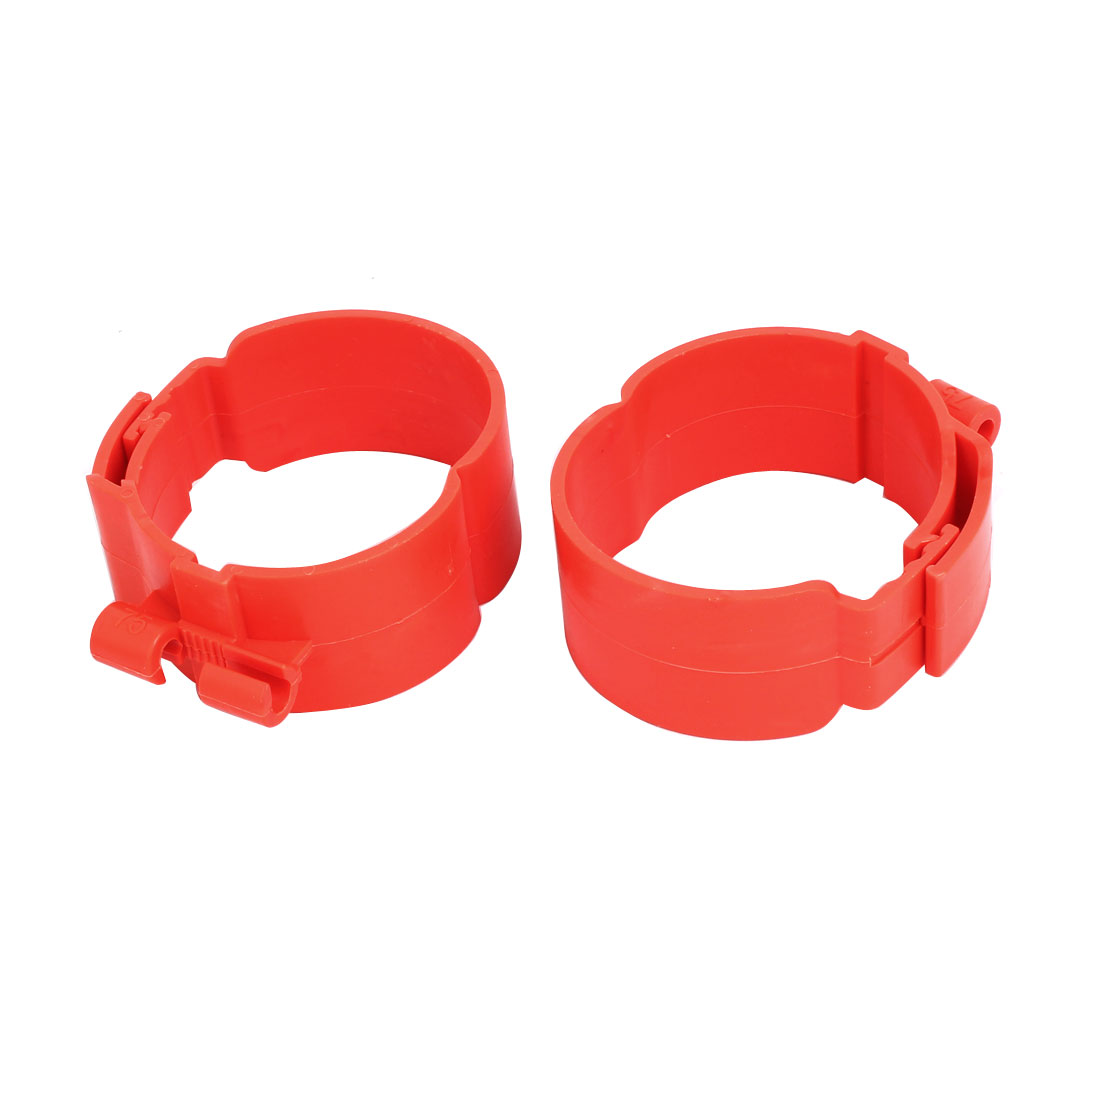 75mm Dia 38mm Width Central Air Conditioner Pipe Clip Clamp Red 2pcs